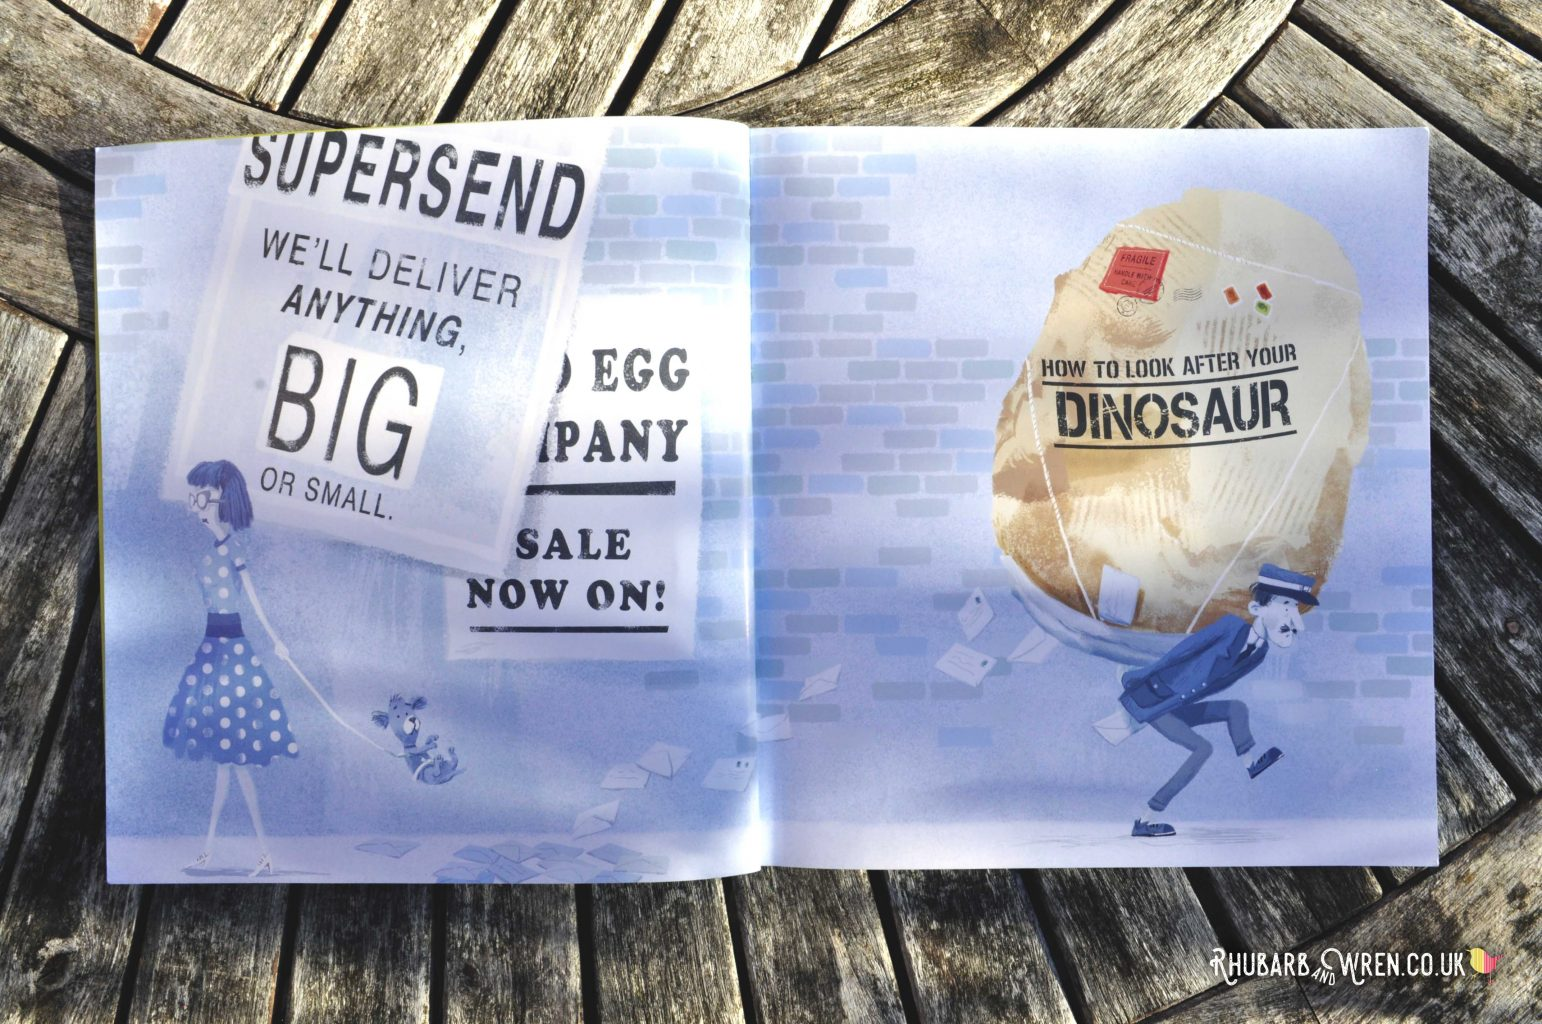 Postman struggling with large egg parcel - illustration from How to Look After Your Dinosaur by Jason Cockcroft.